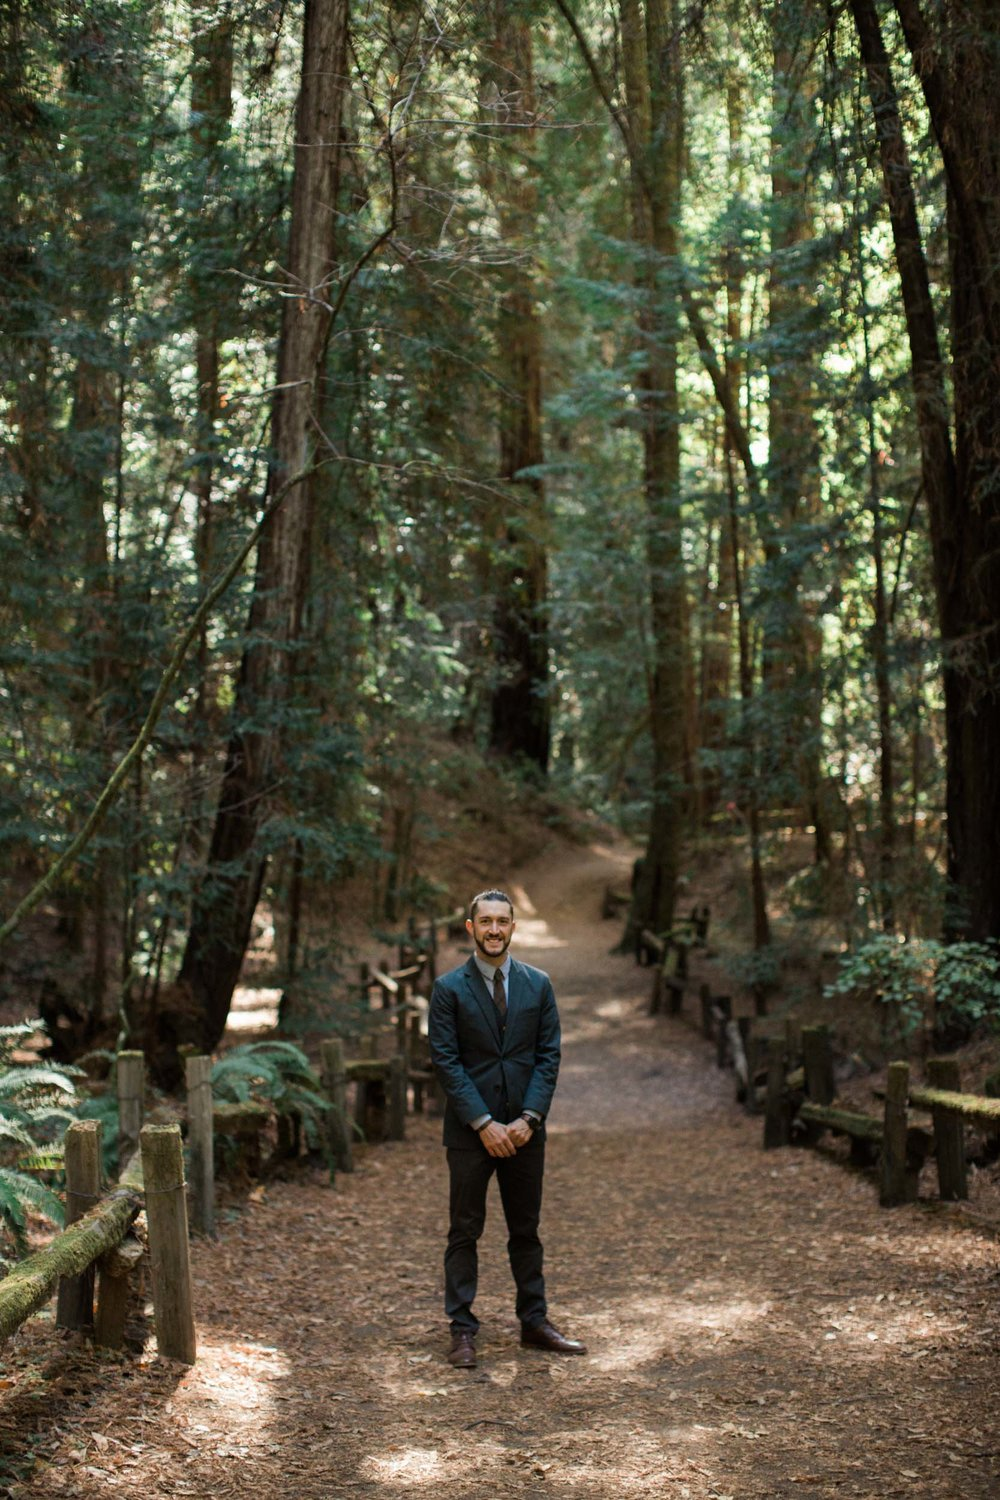 BKM-Photography-Russian-River-Wedding-Redwoods-Guerneville-California-Destination-Wedding-Photographer-0001.jpg